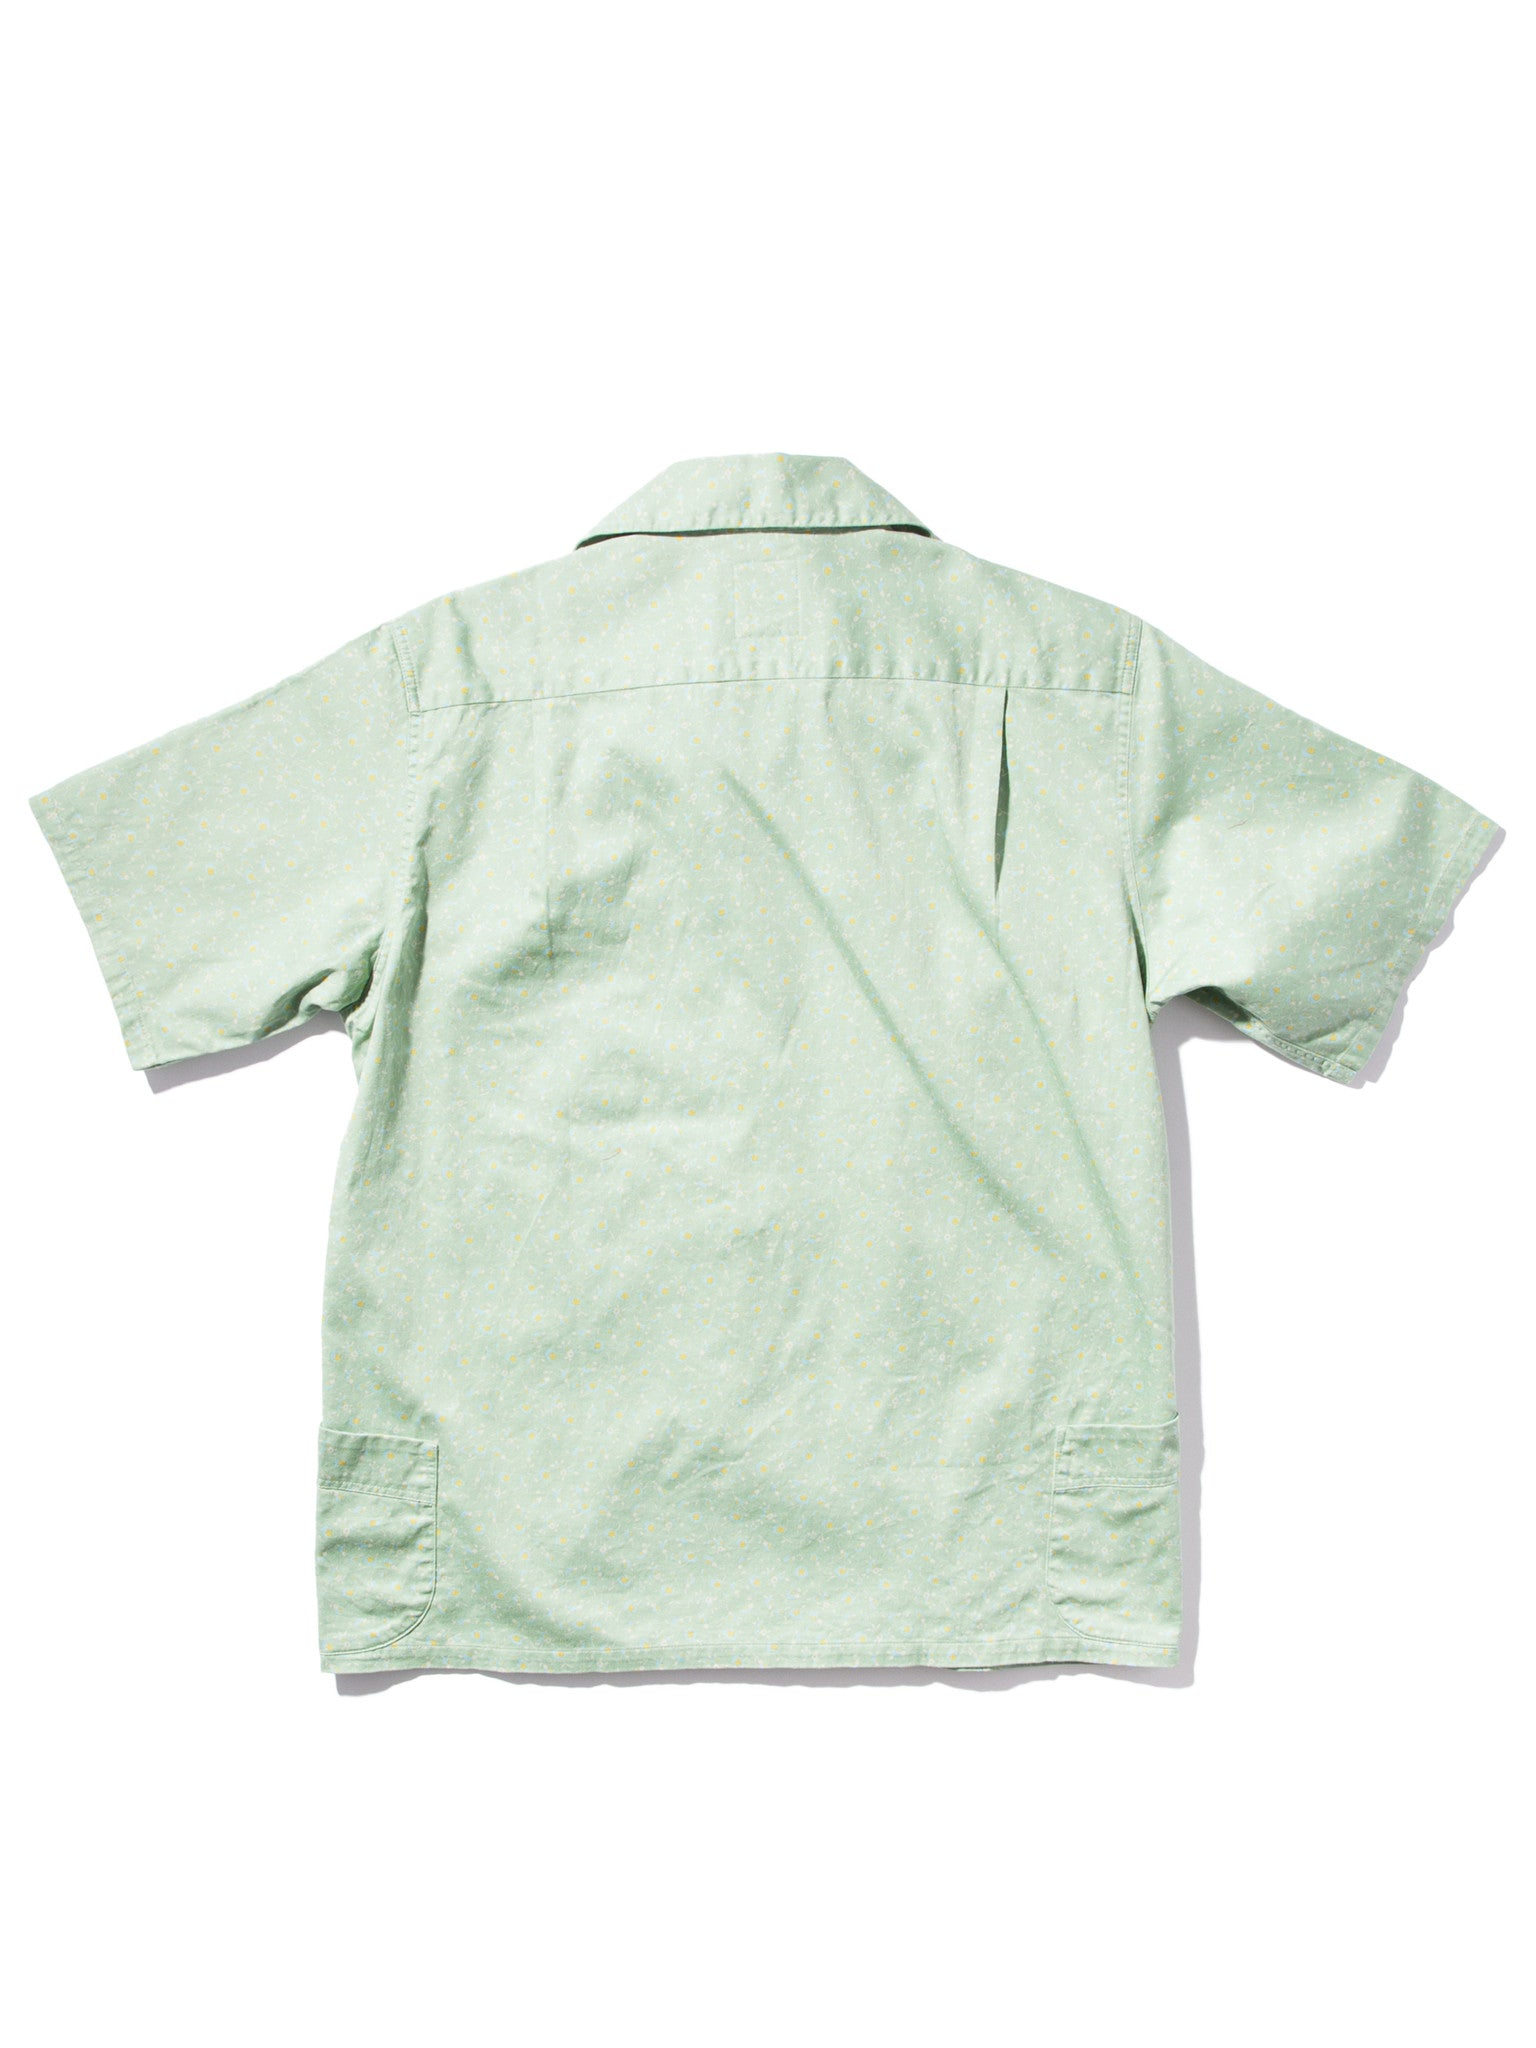 Red Kahuna Shirt S/S Petals 7